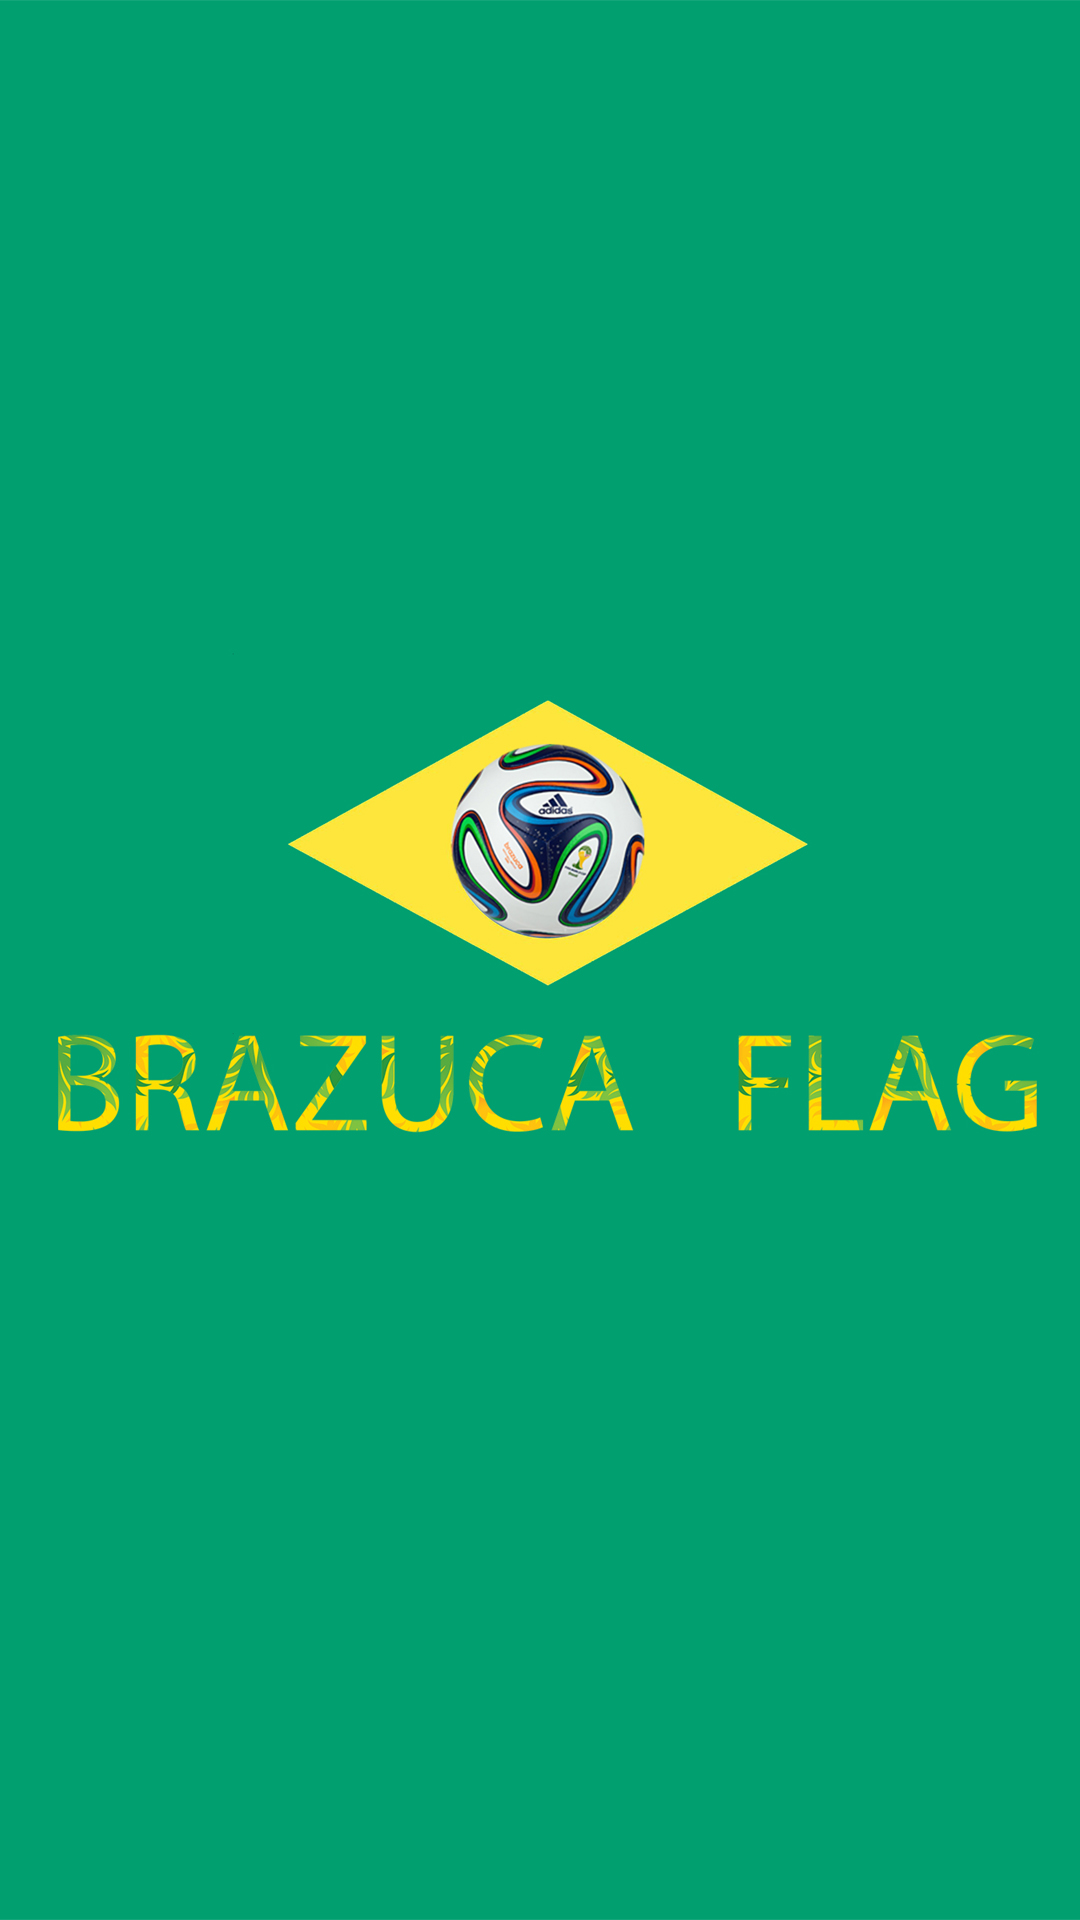 Brazuca Flag world cup 2014